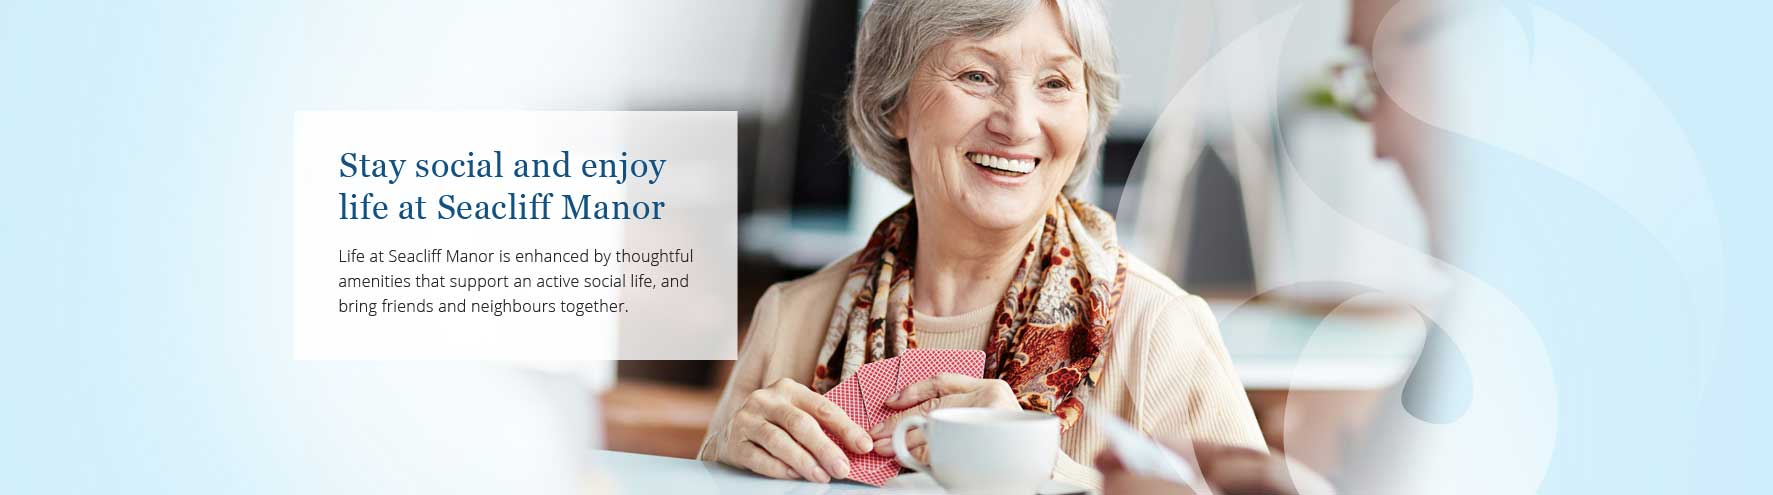 Stay social and enjoy life at Seacliff Manor Retirement Residence.